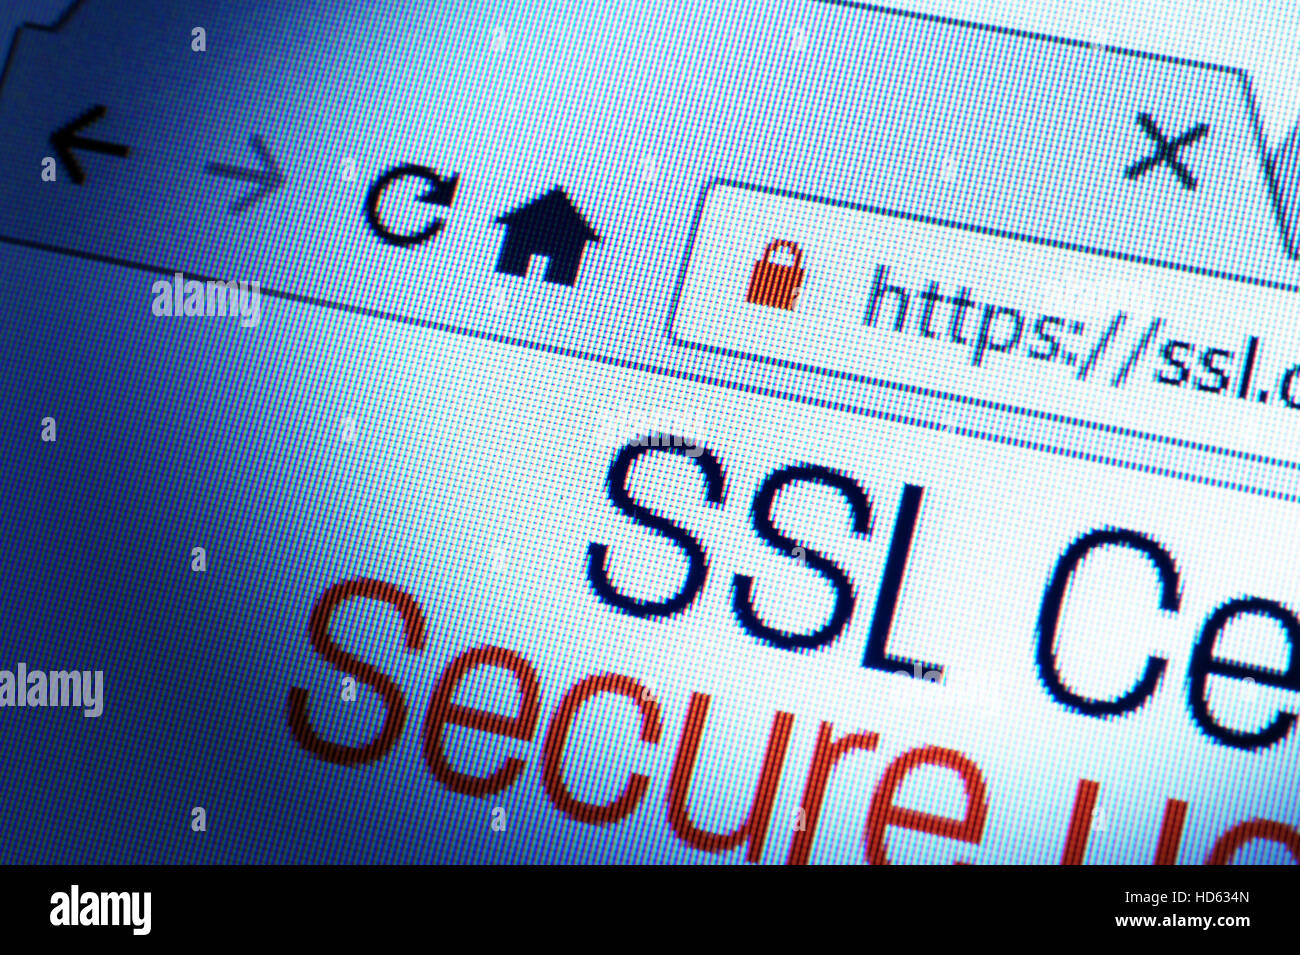 Https url address and lock symbol during SSL connection - Stock Image